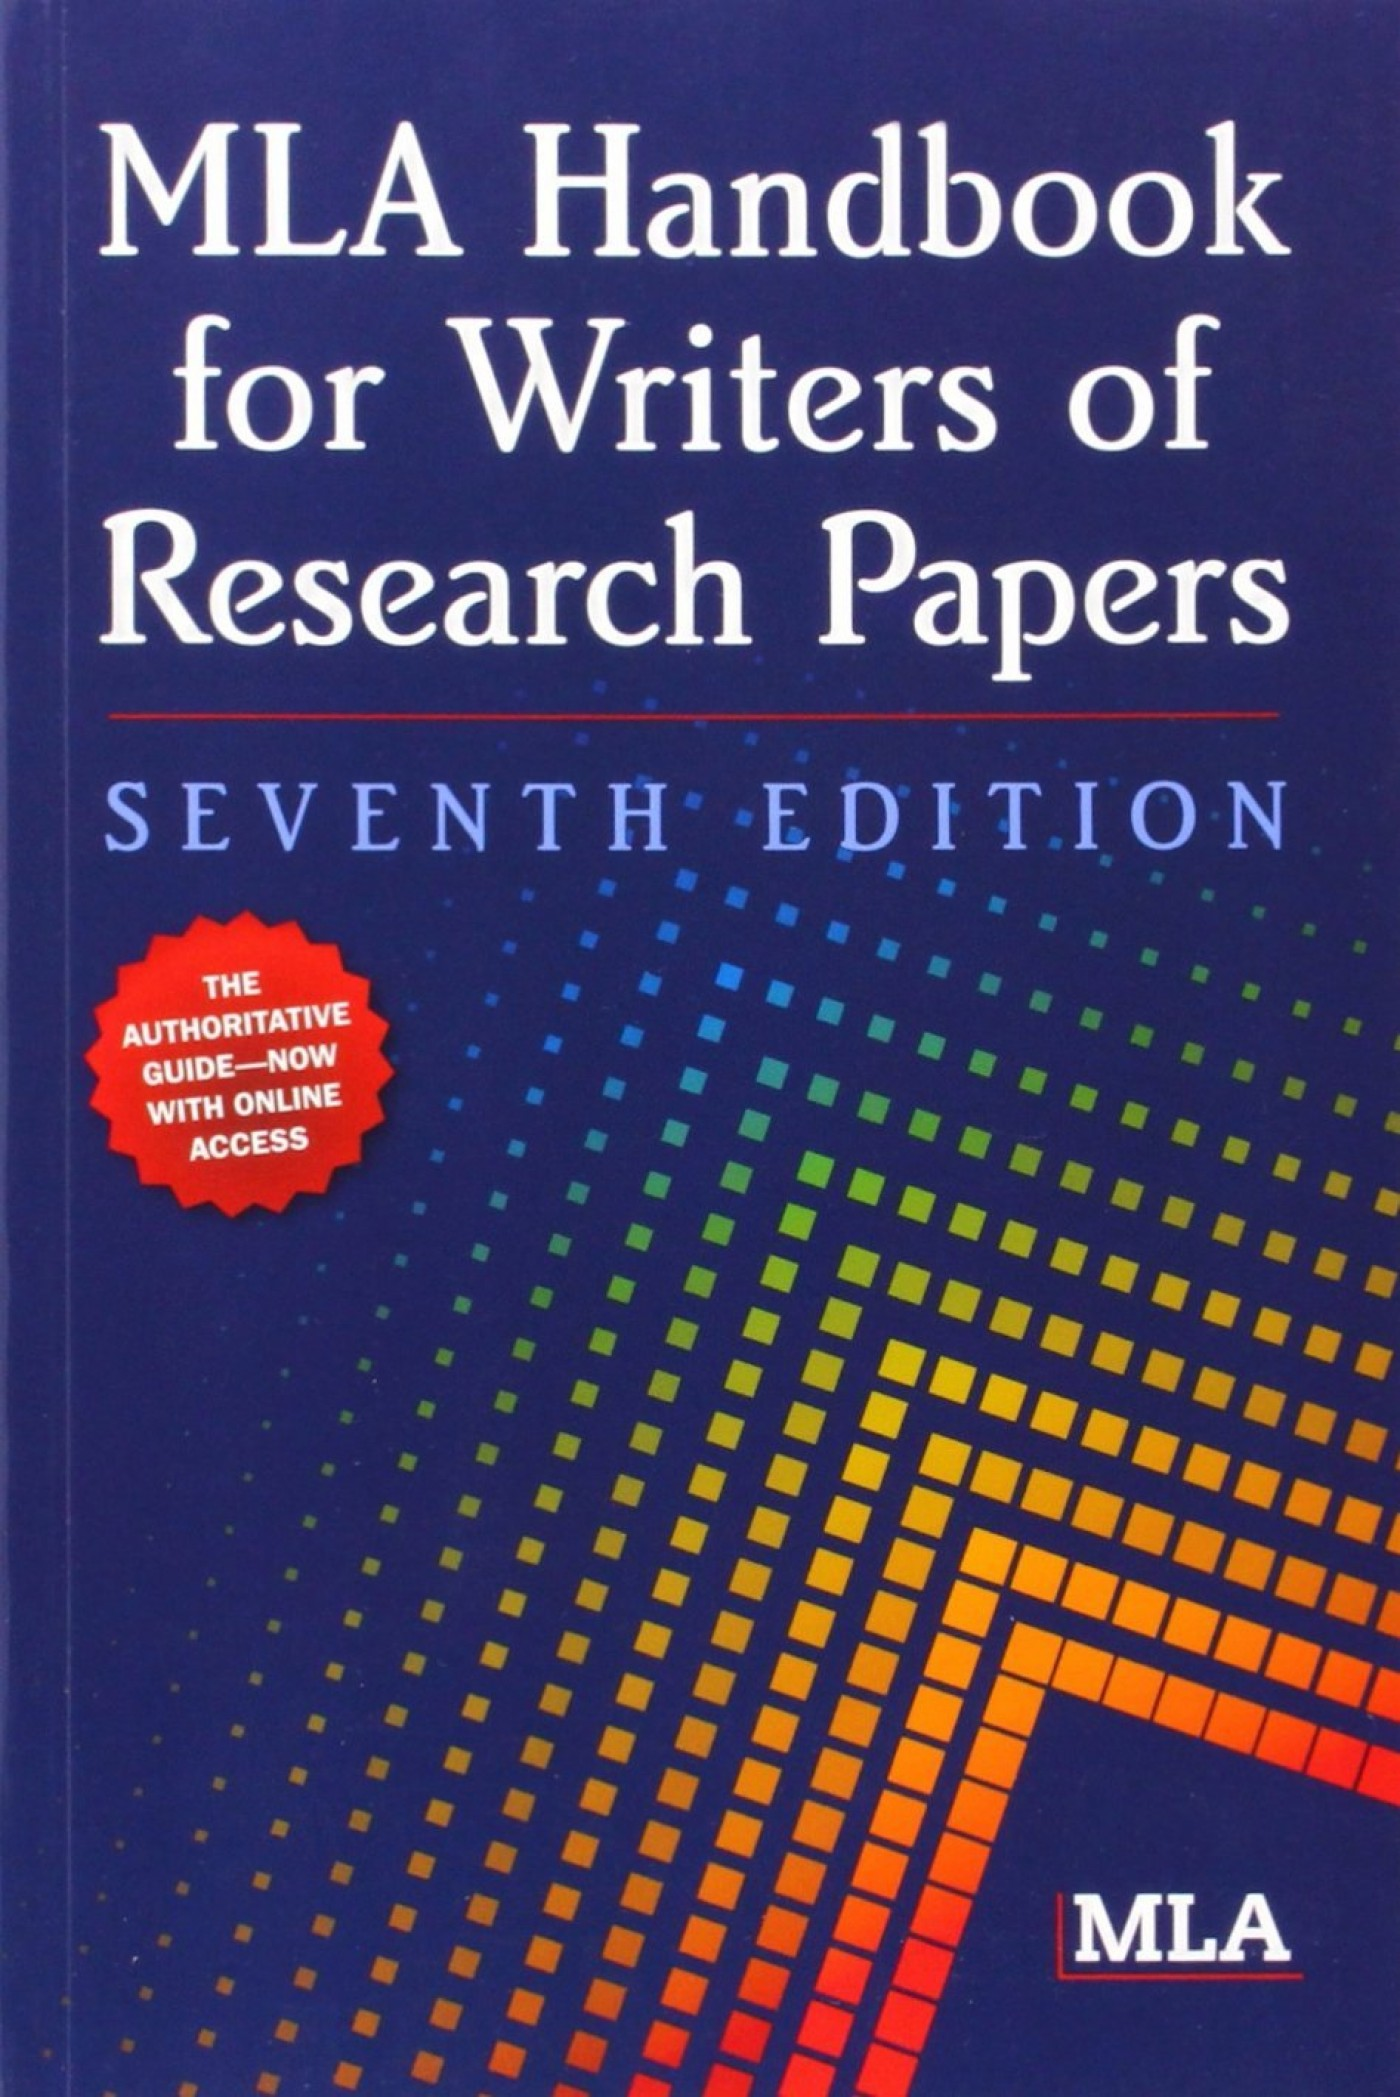 001 The Mla Handbook For Writers Of Research Papers Paper Fearsome 8th Edition 7th 2009 (8th Ed.) 1400